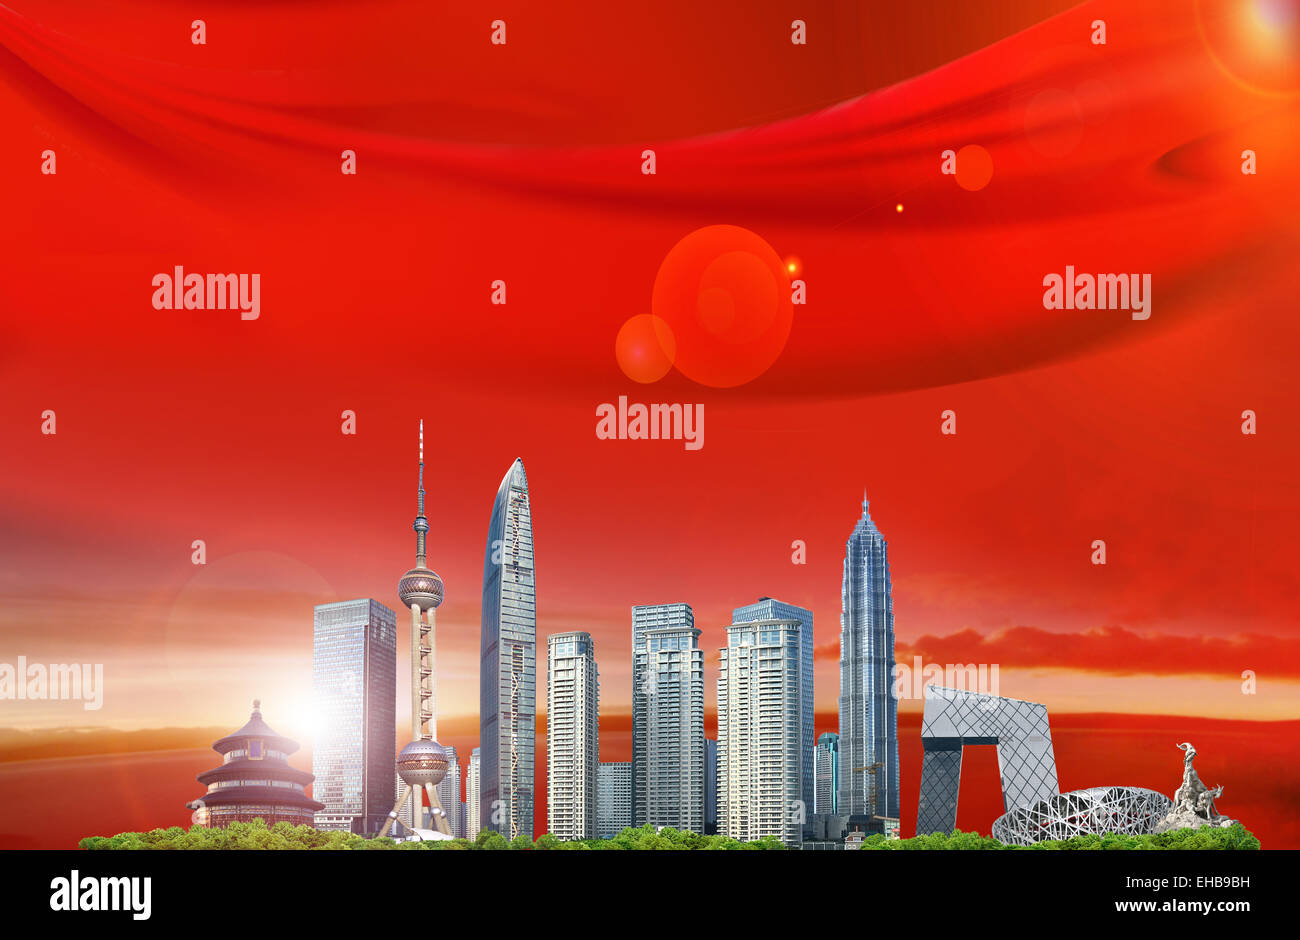 China city landmarks - Stock Image